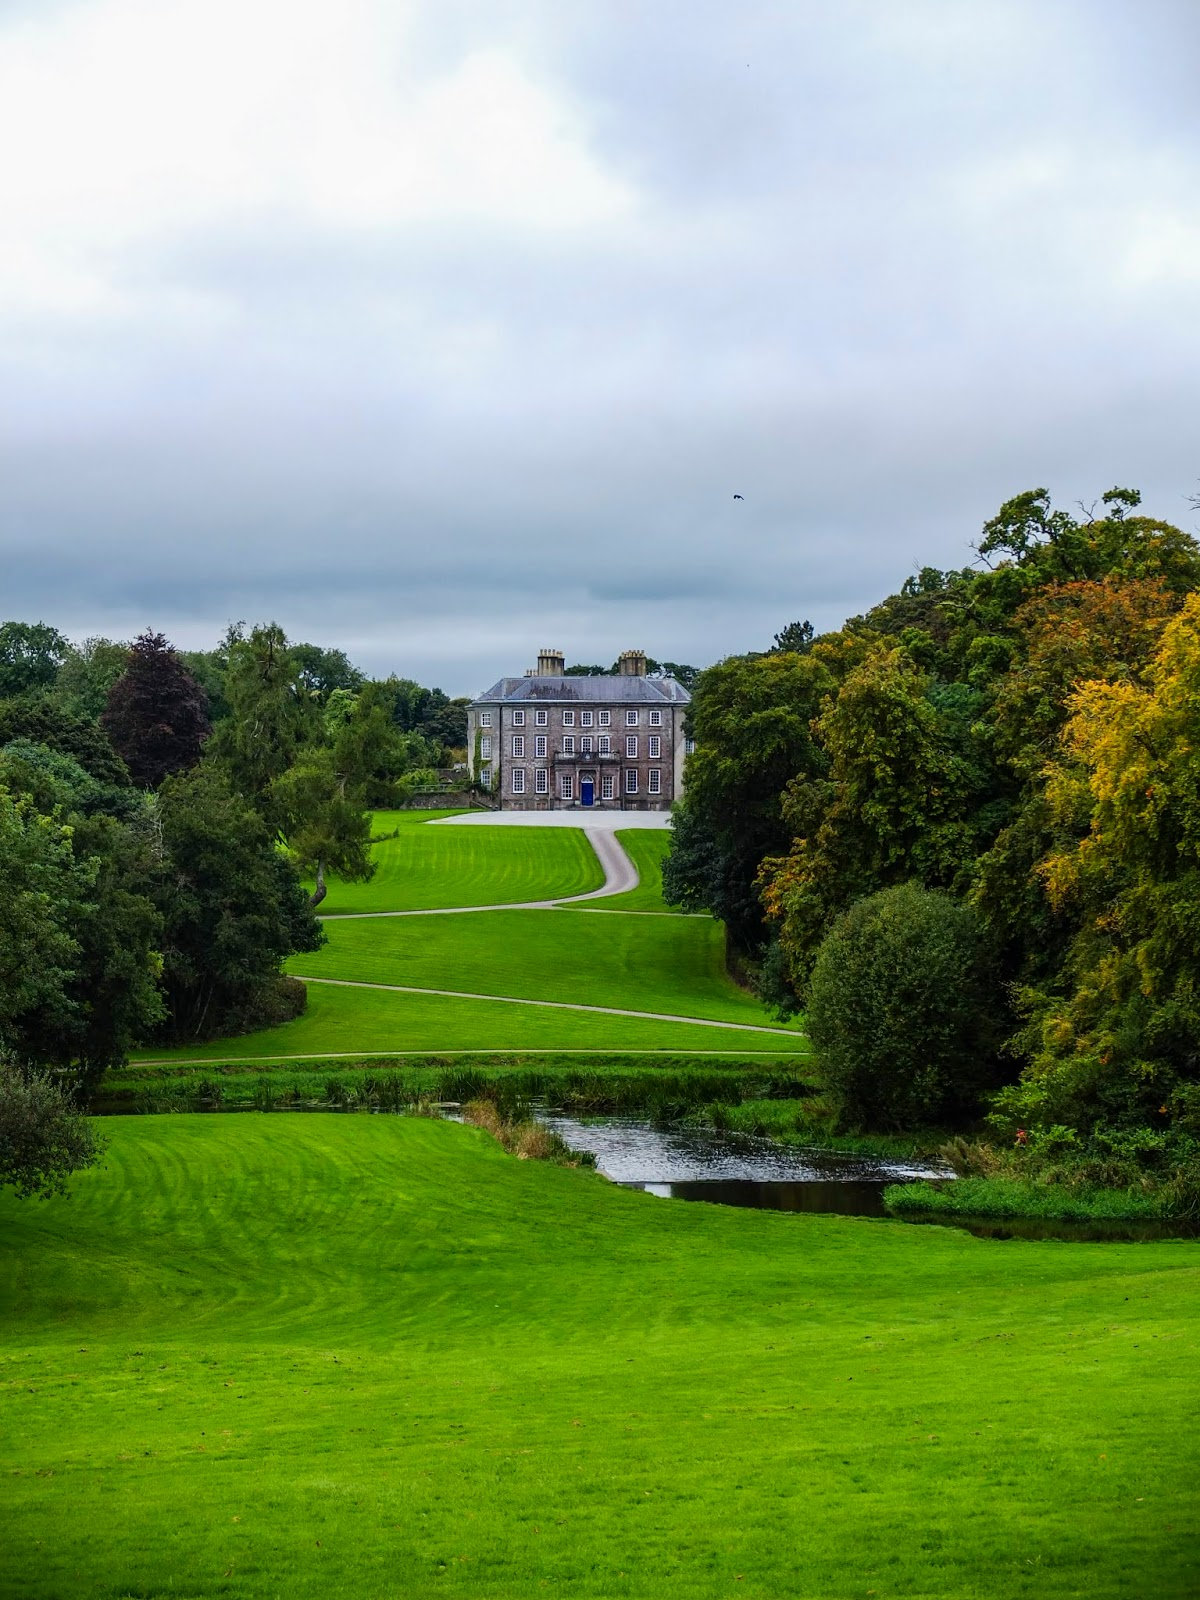 A view of the Doneraile House across the green grounds.